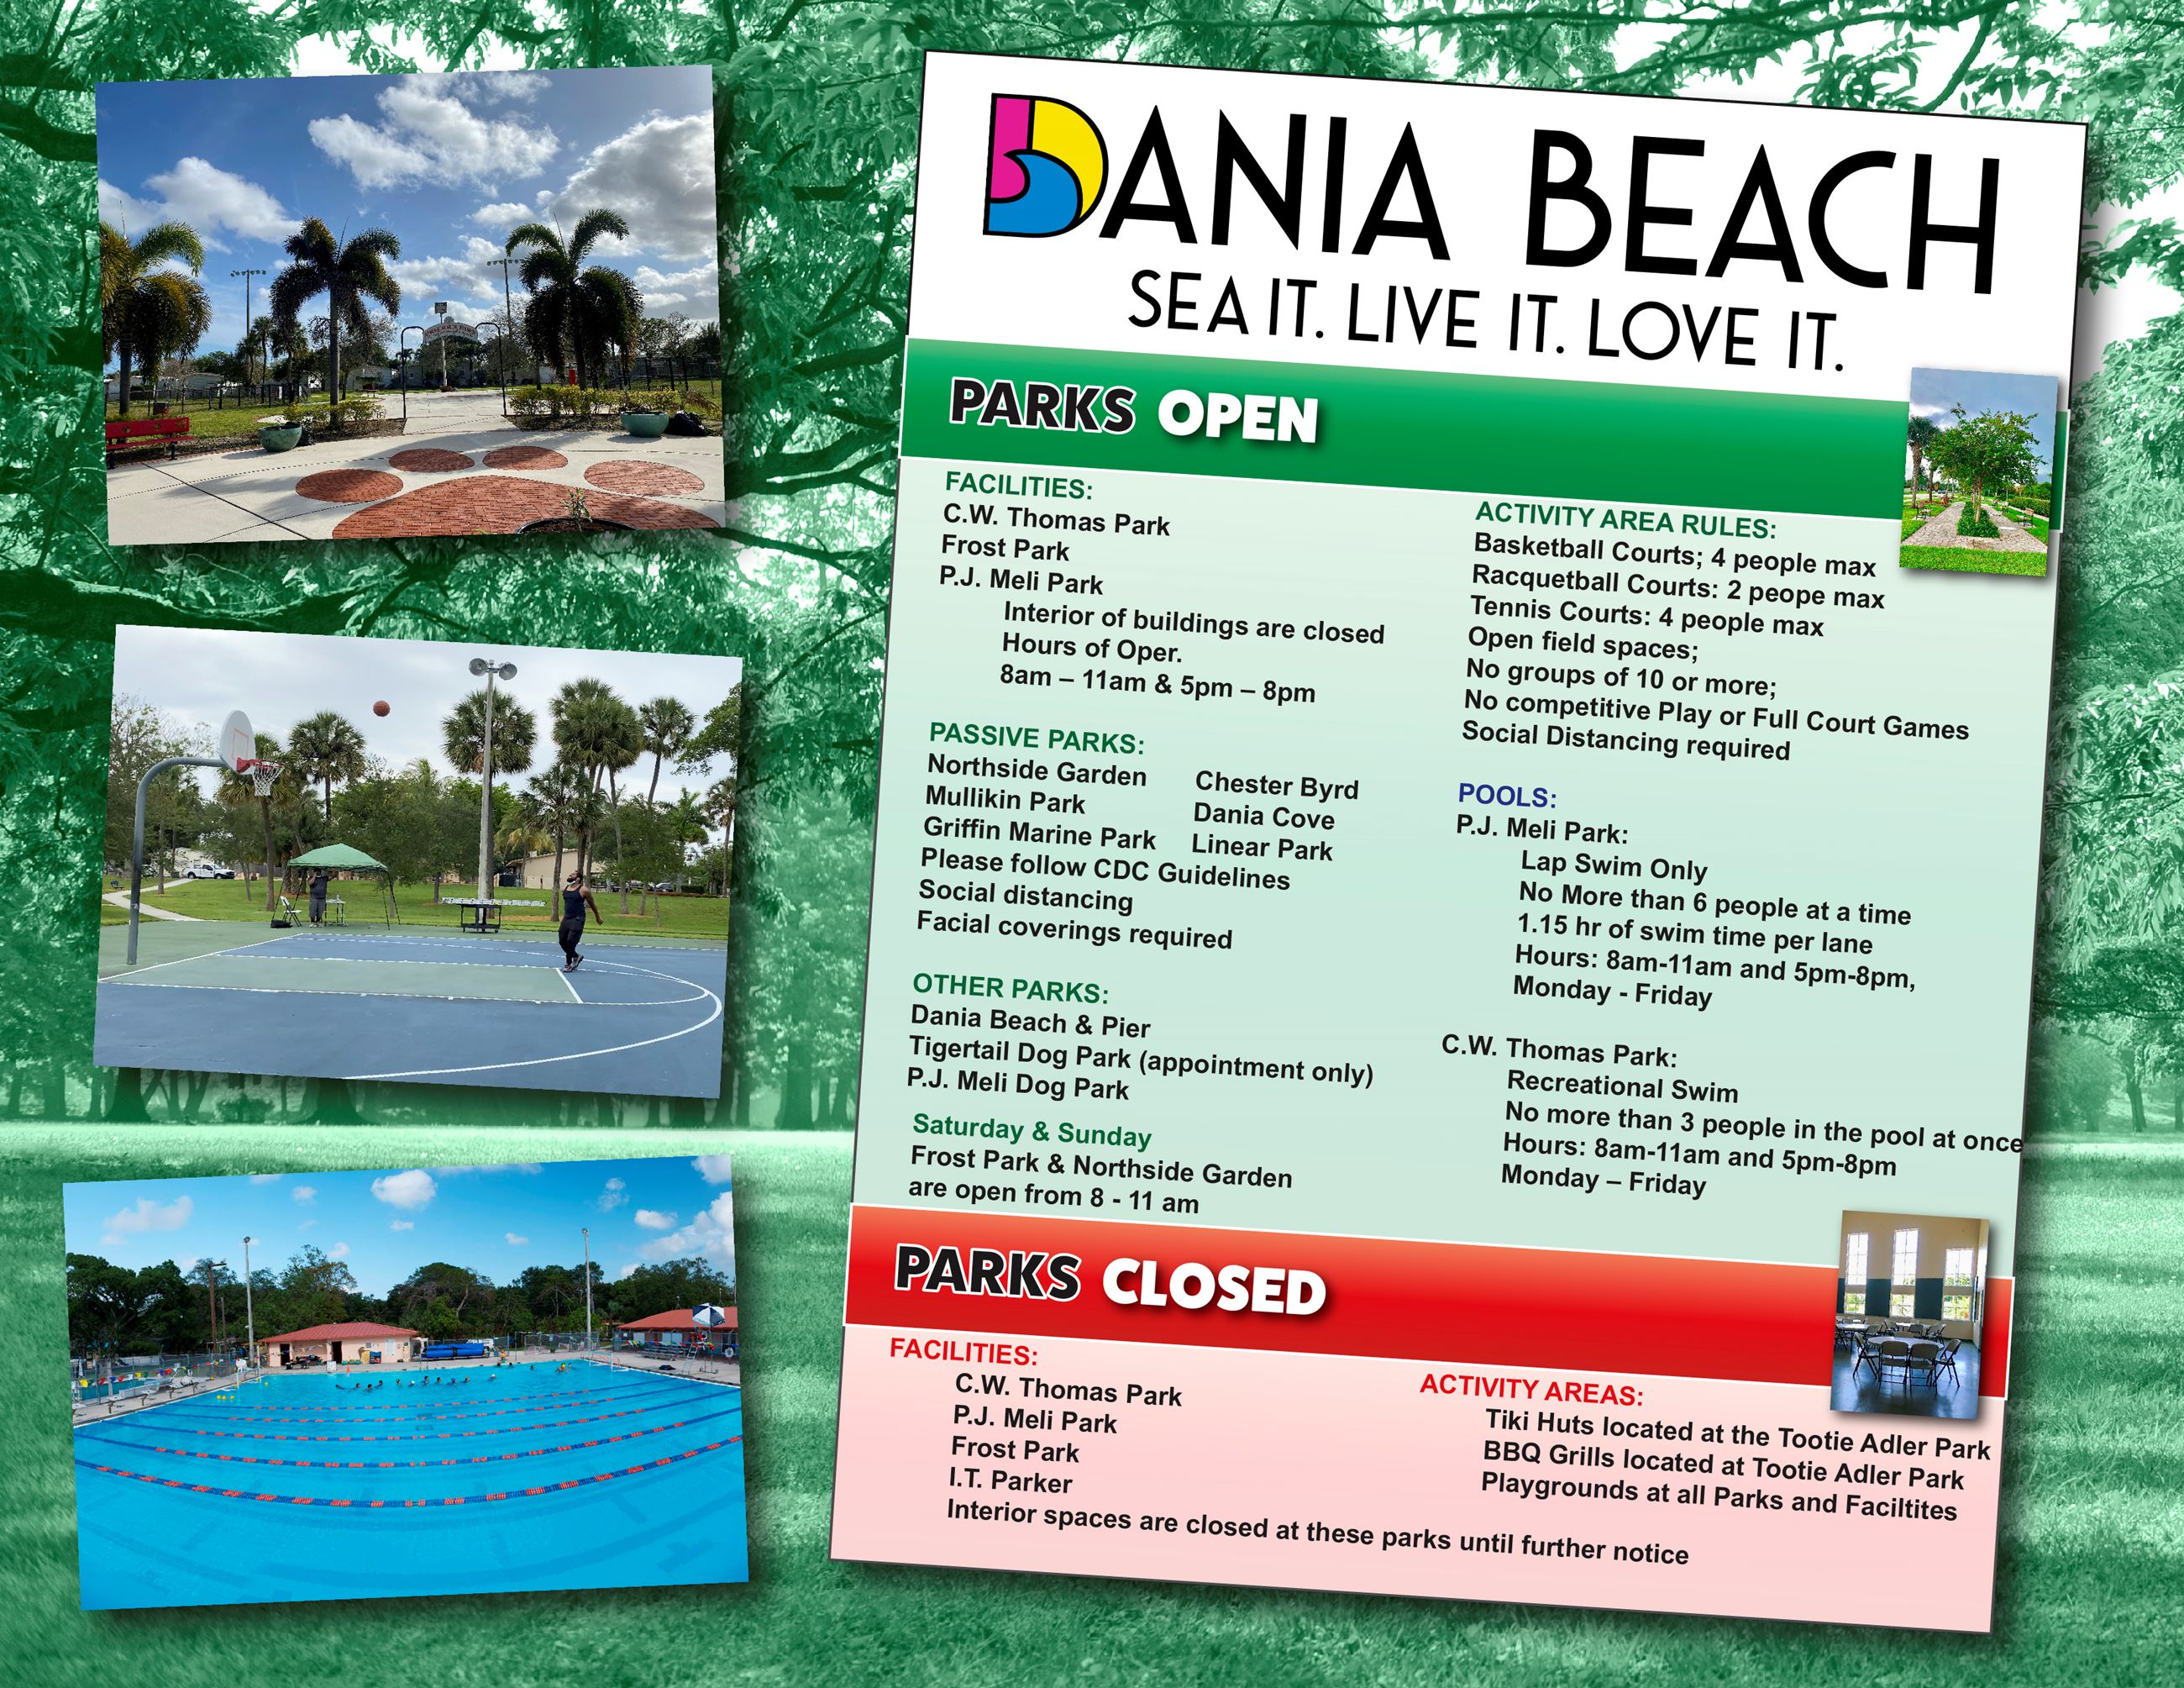 Dania Beach Parks update during Covid19